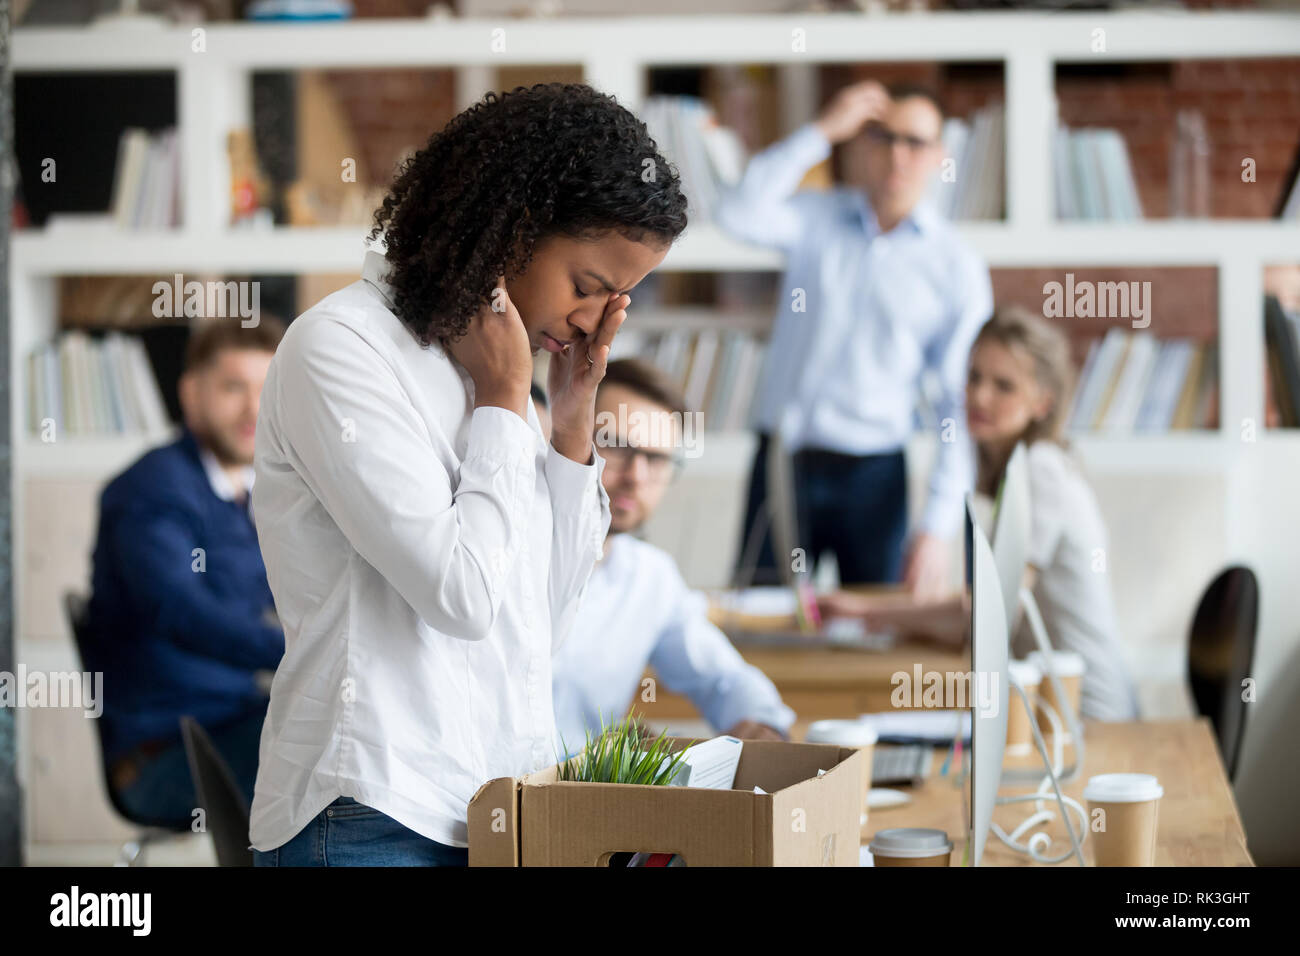 Sad african female employee packing belongings in box got fired - Stock Image